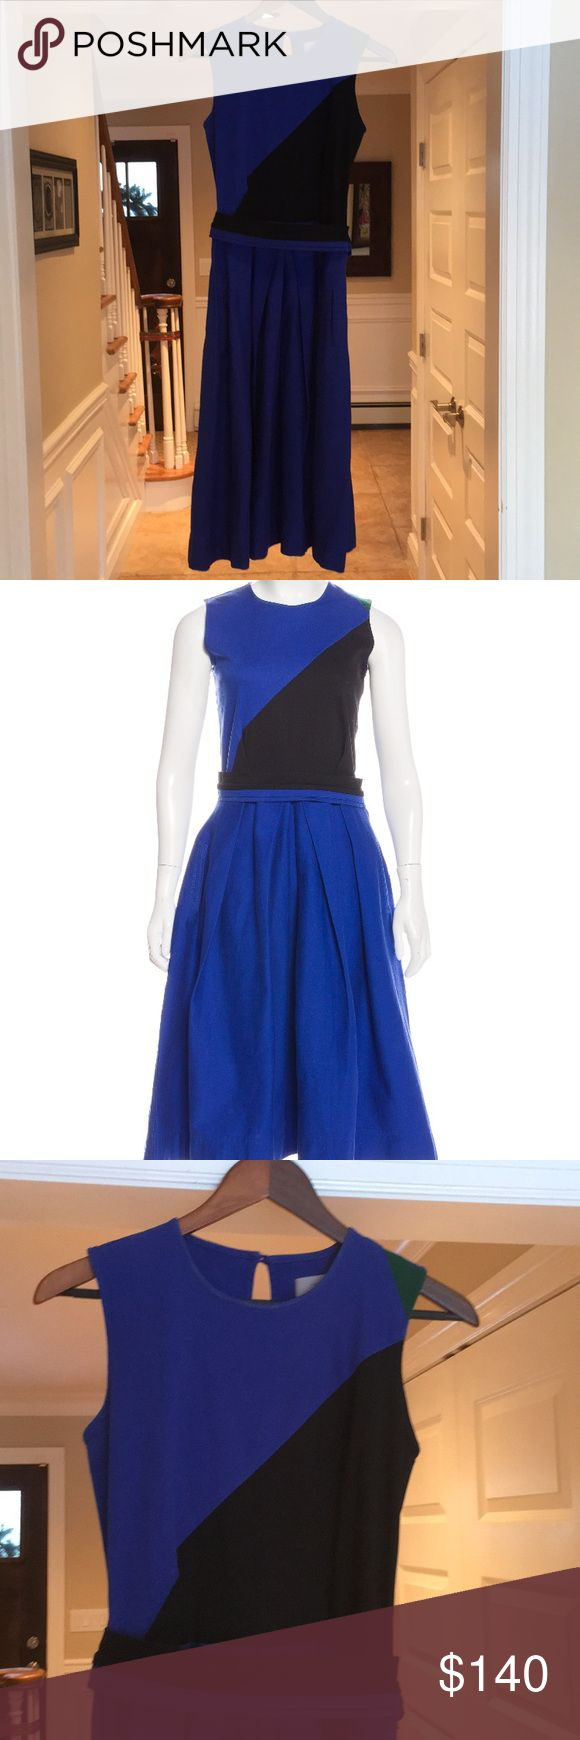 """Preen Line Blue Black Green Cotton Drill Dress M Beautiful dress from Preen Line, which is a favorite of Kate Middleton's.  This cobalt blue, black & emerald green A-Line dress is sleeveless, features an exposed side zipper, 2 front slit pockets, button closure at keyhole back, pleated front & back on skirt & a black & blue pleated belt.  It's a size medium & is a thick stretch cotton material.  Approx meas are: 42 1/2"""" length, 16"""" across under arms, 13"""" waist.  In excellent pre-loved…"""